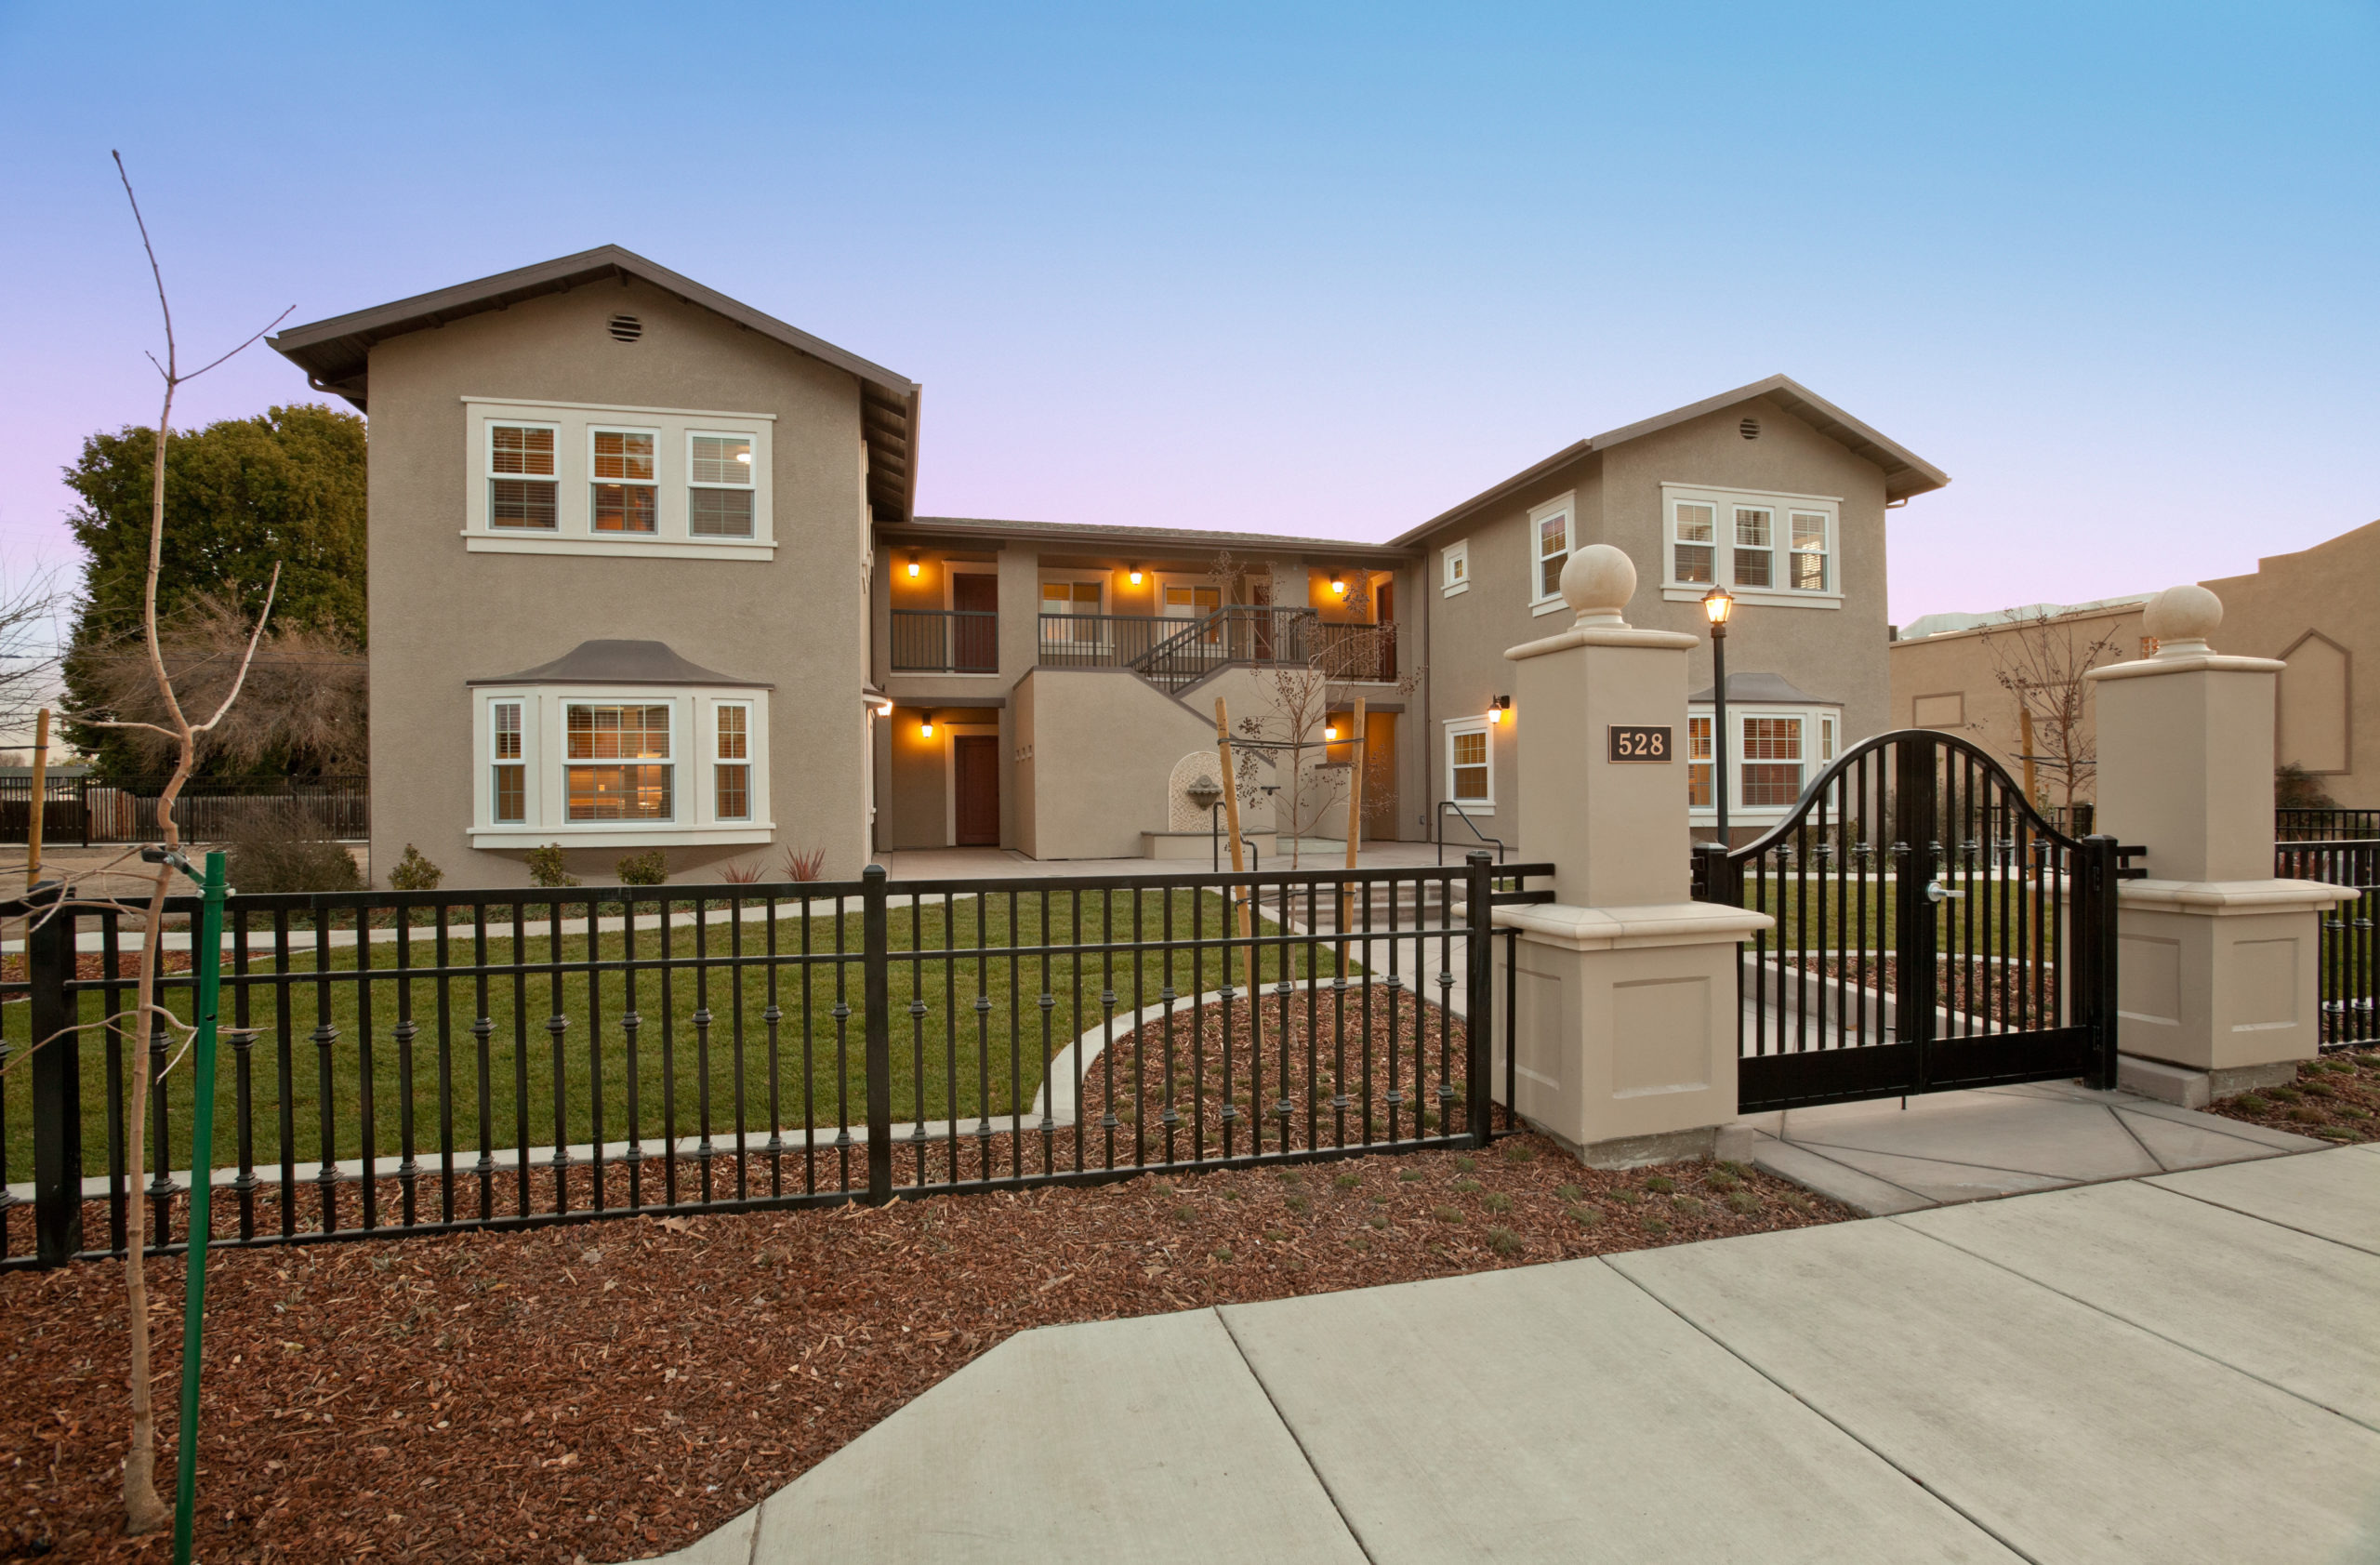 Hope Family Shelter Manteca Multi Family Residential Construction Apartment Complex Renovation Remodeling General Contractor Manteca Front Exterior Home